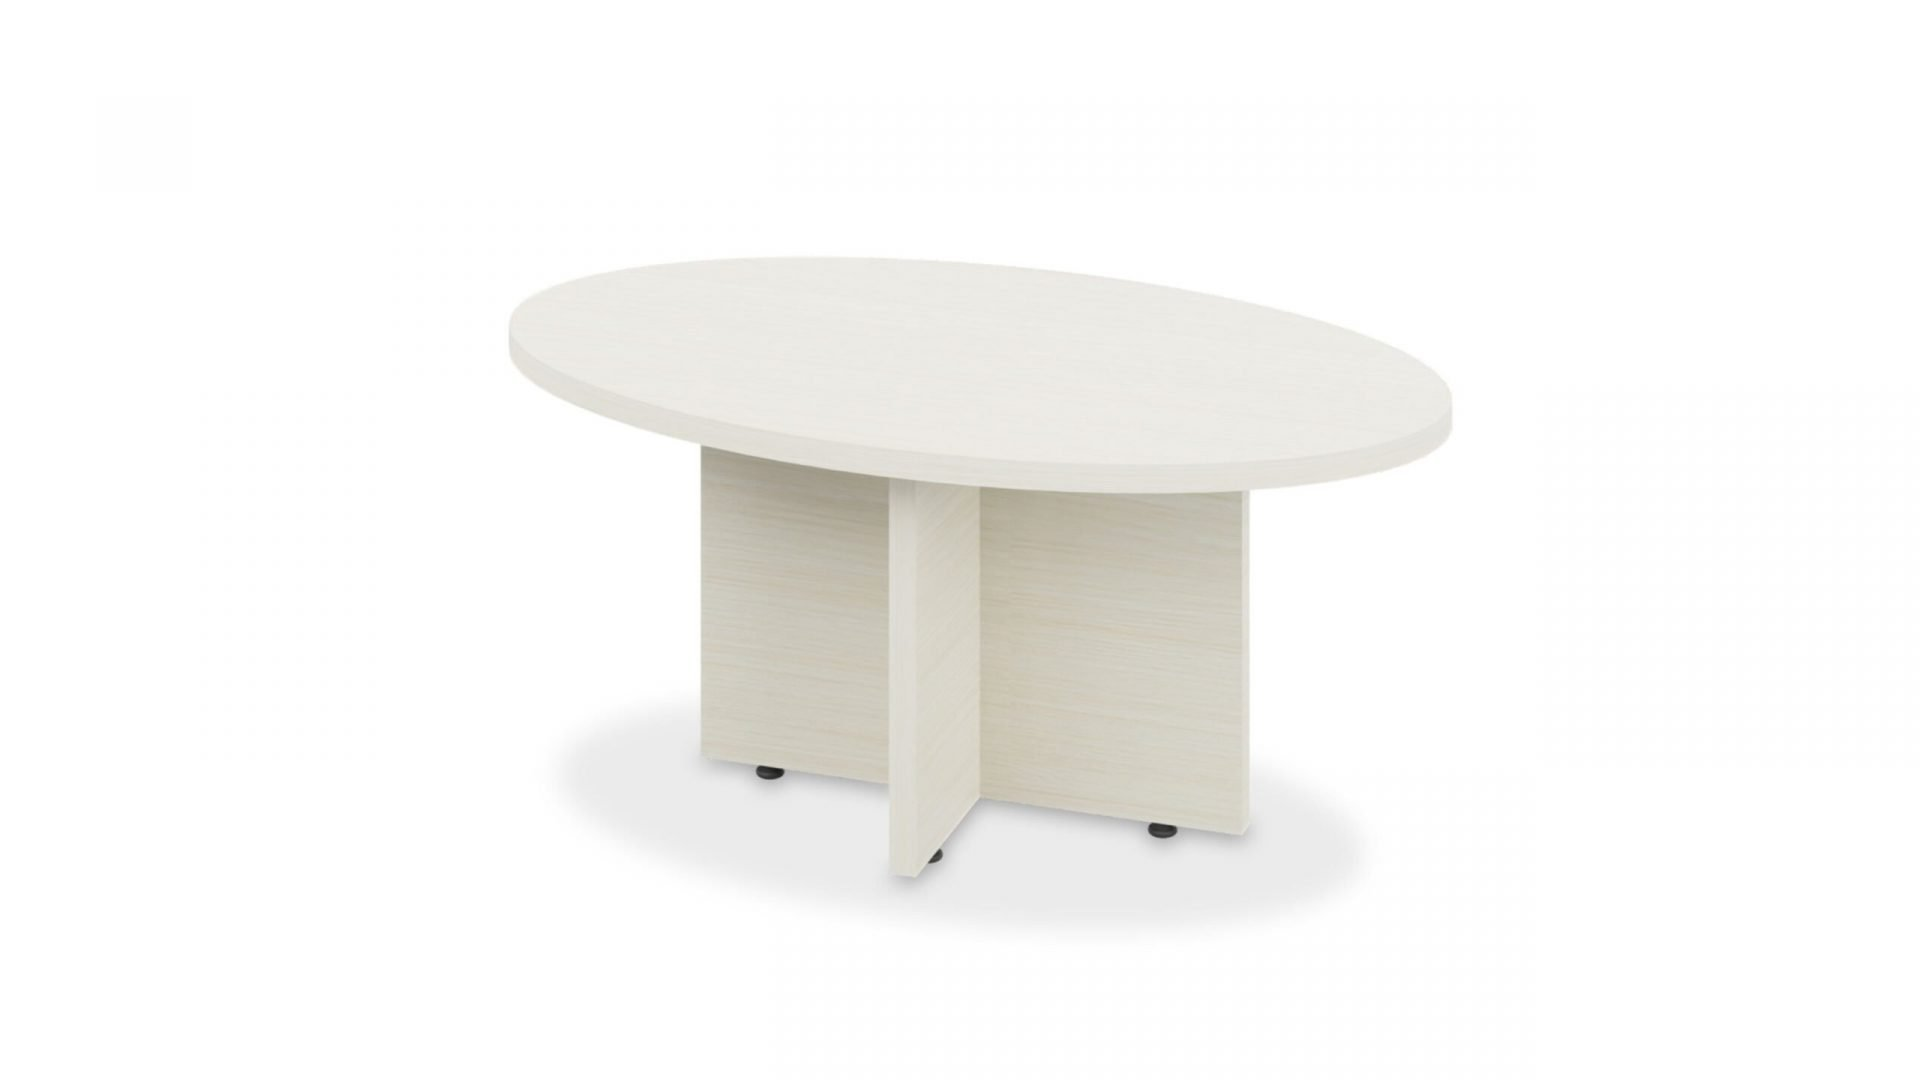 Oval Coffee Table 1619 with X-Base